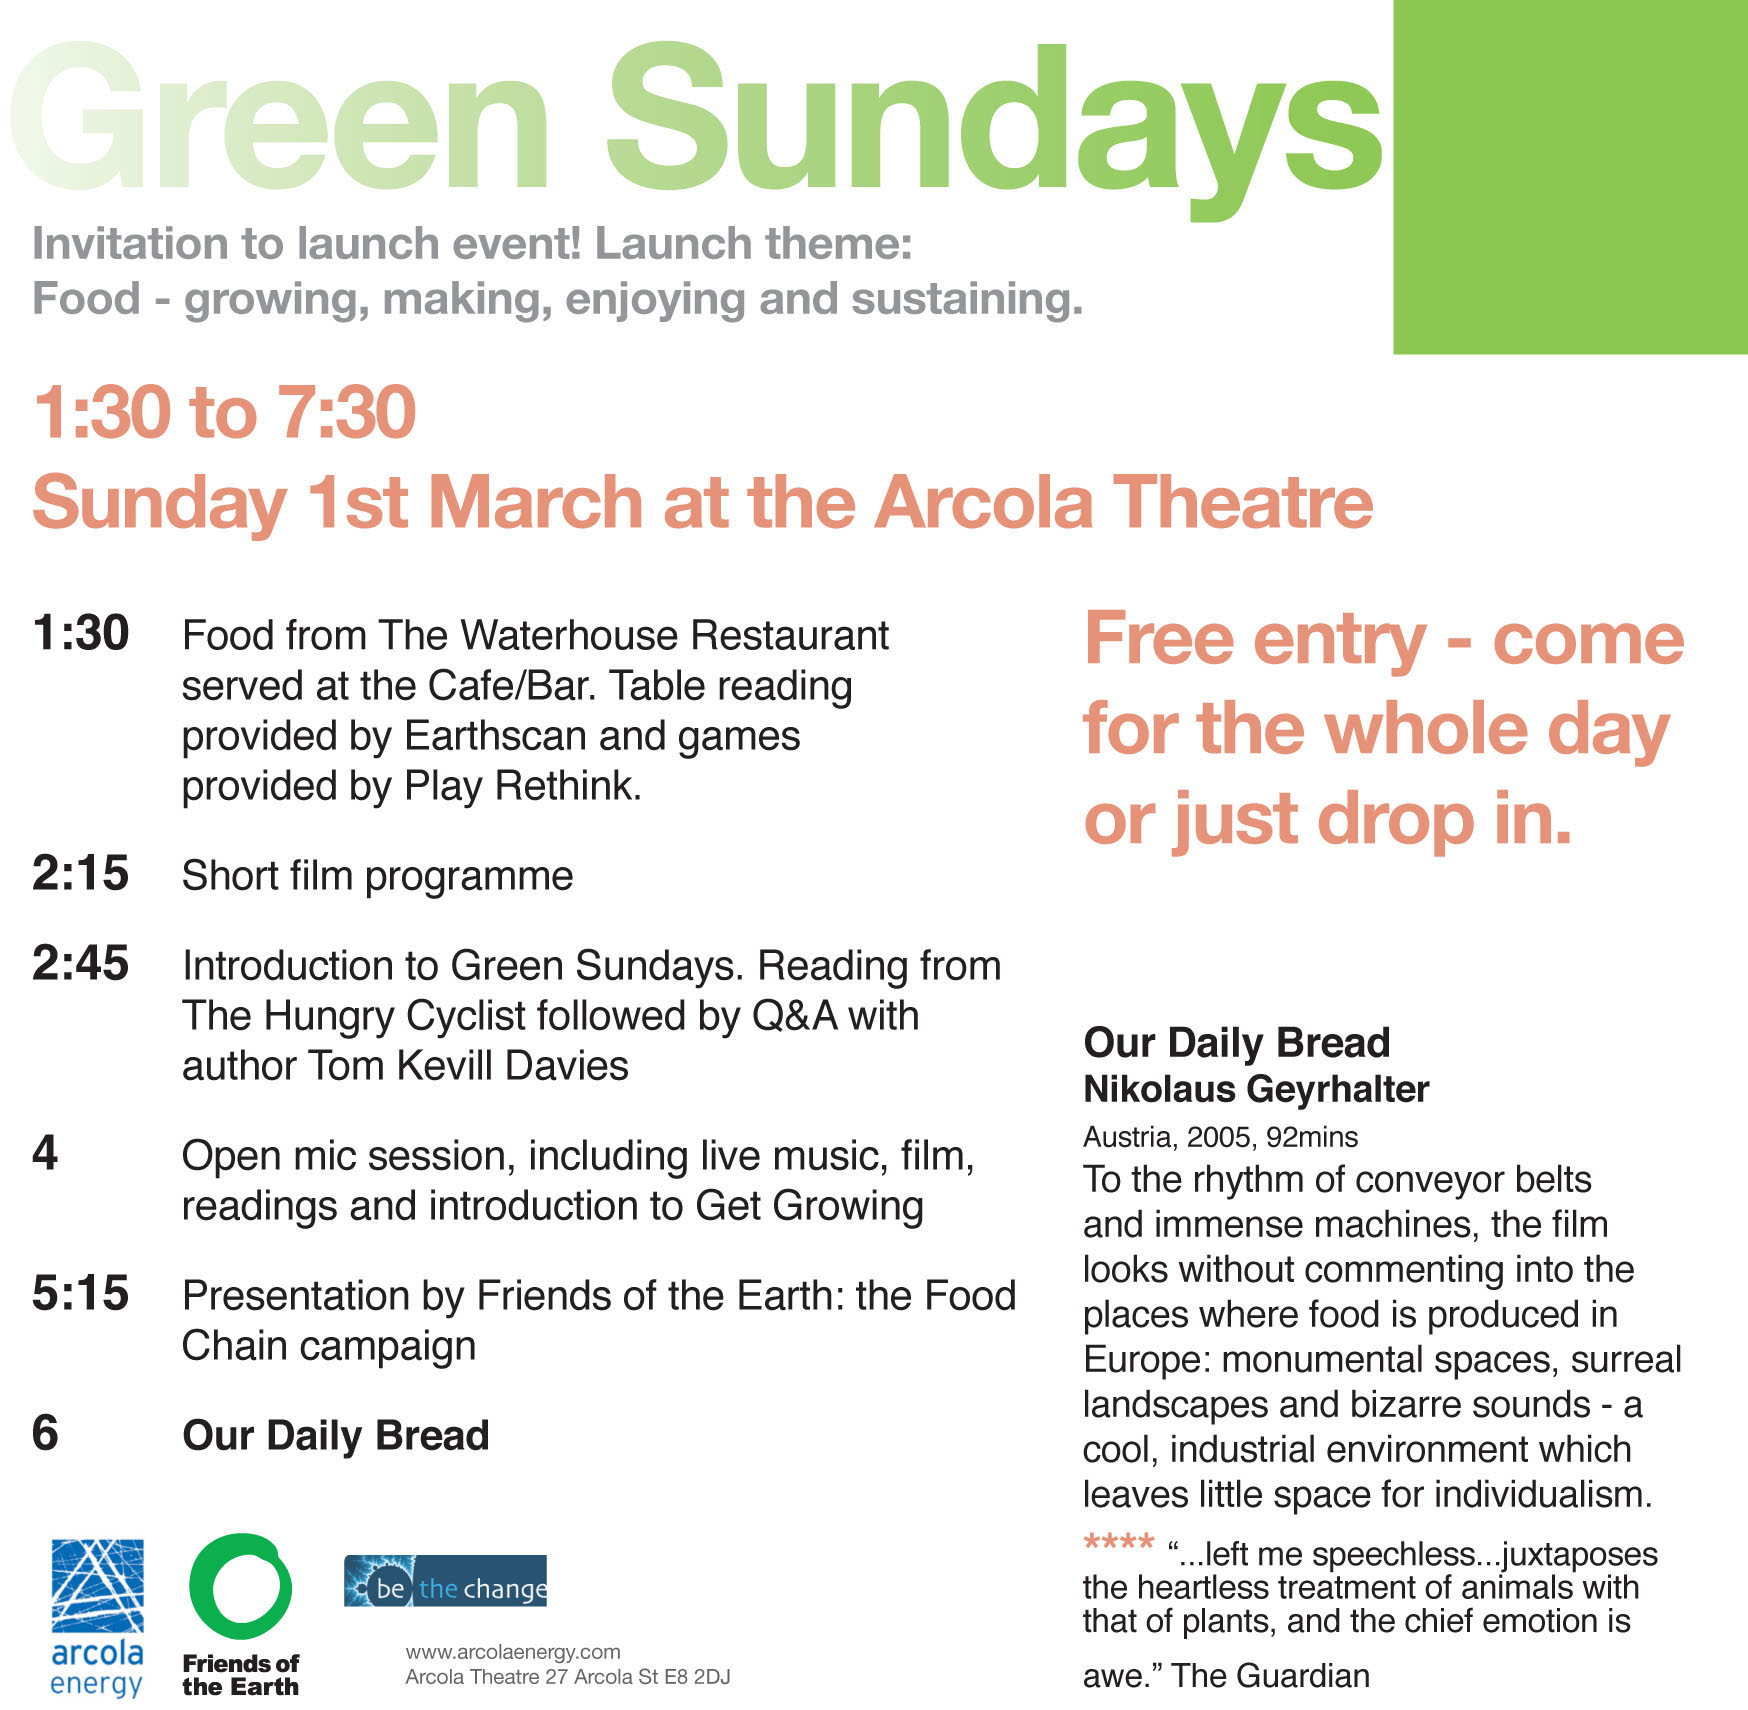 green-sundays-e-flyer-1st-march